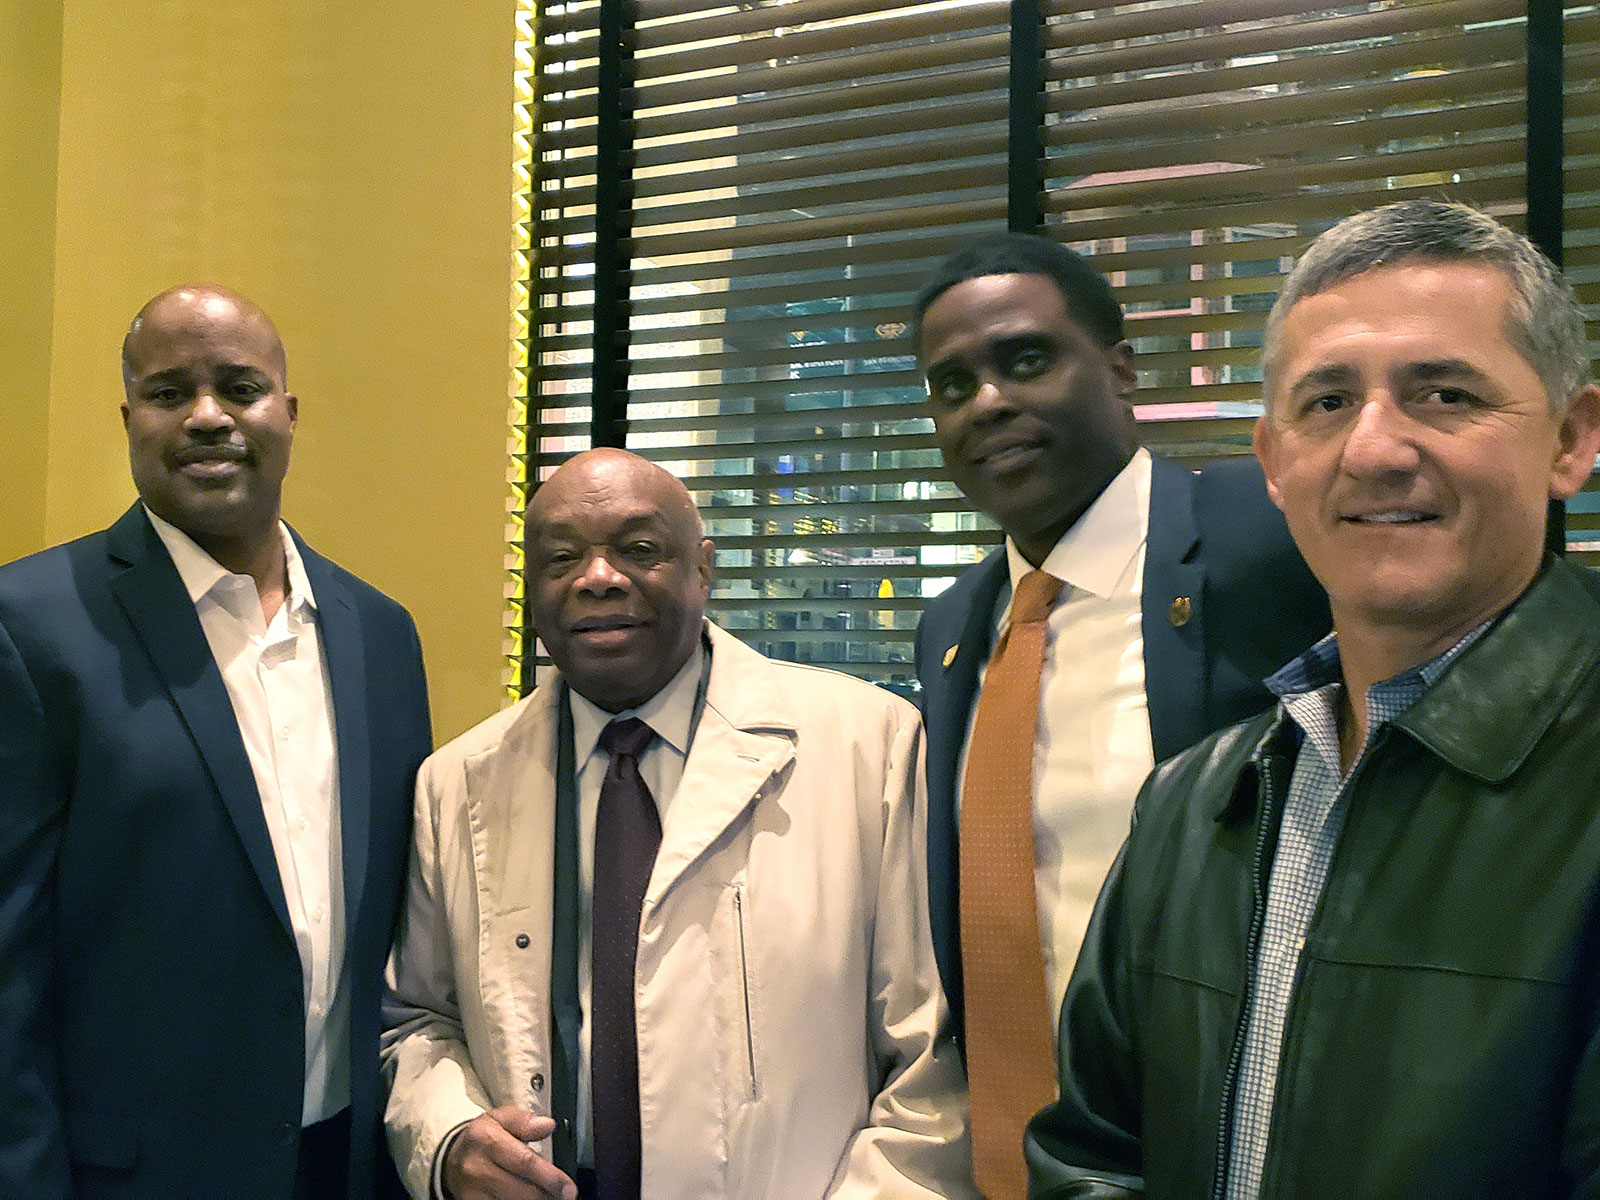 Left to Right: Vince Wells, Ex-San Francisco Mayor Willie Brown, Local 798 President Shon Buford, CPF Secretary-Treasurer Mike Lopez